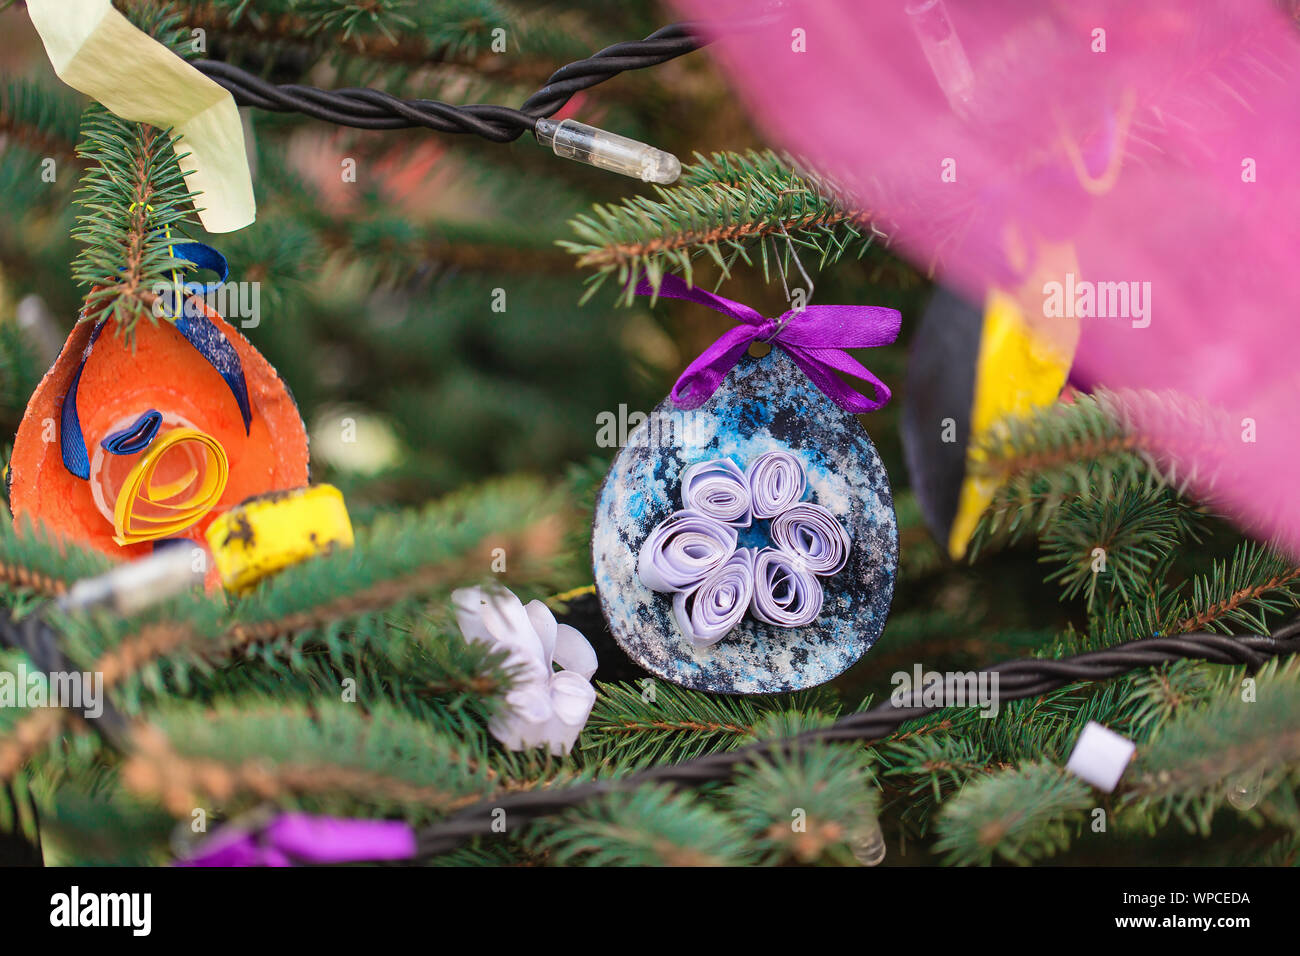 Handmade Decoration Made Of Avocado Skin On A Christmas Tree Outdoor Diy Crafts Creative Ideas For Children Environment Recycle And Zero Waste Conc Stock Photo Alamy